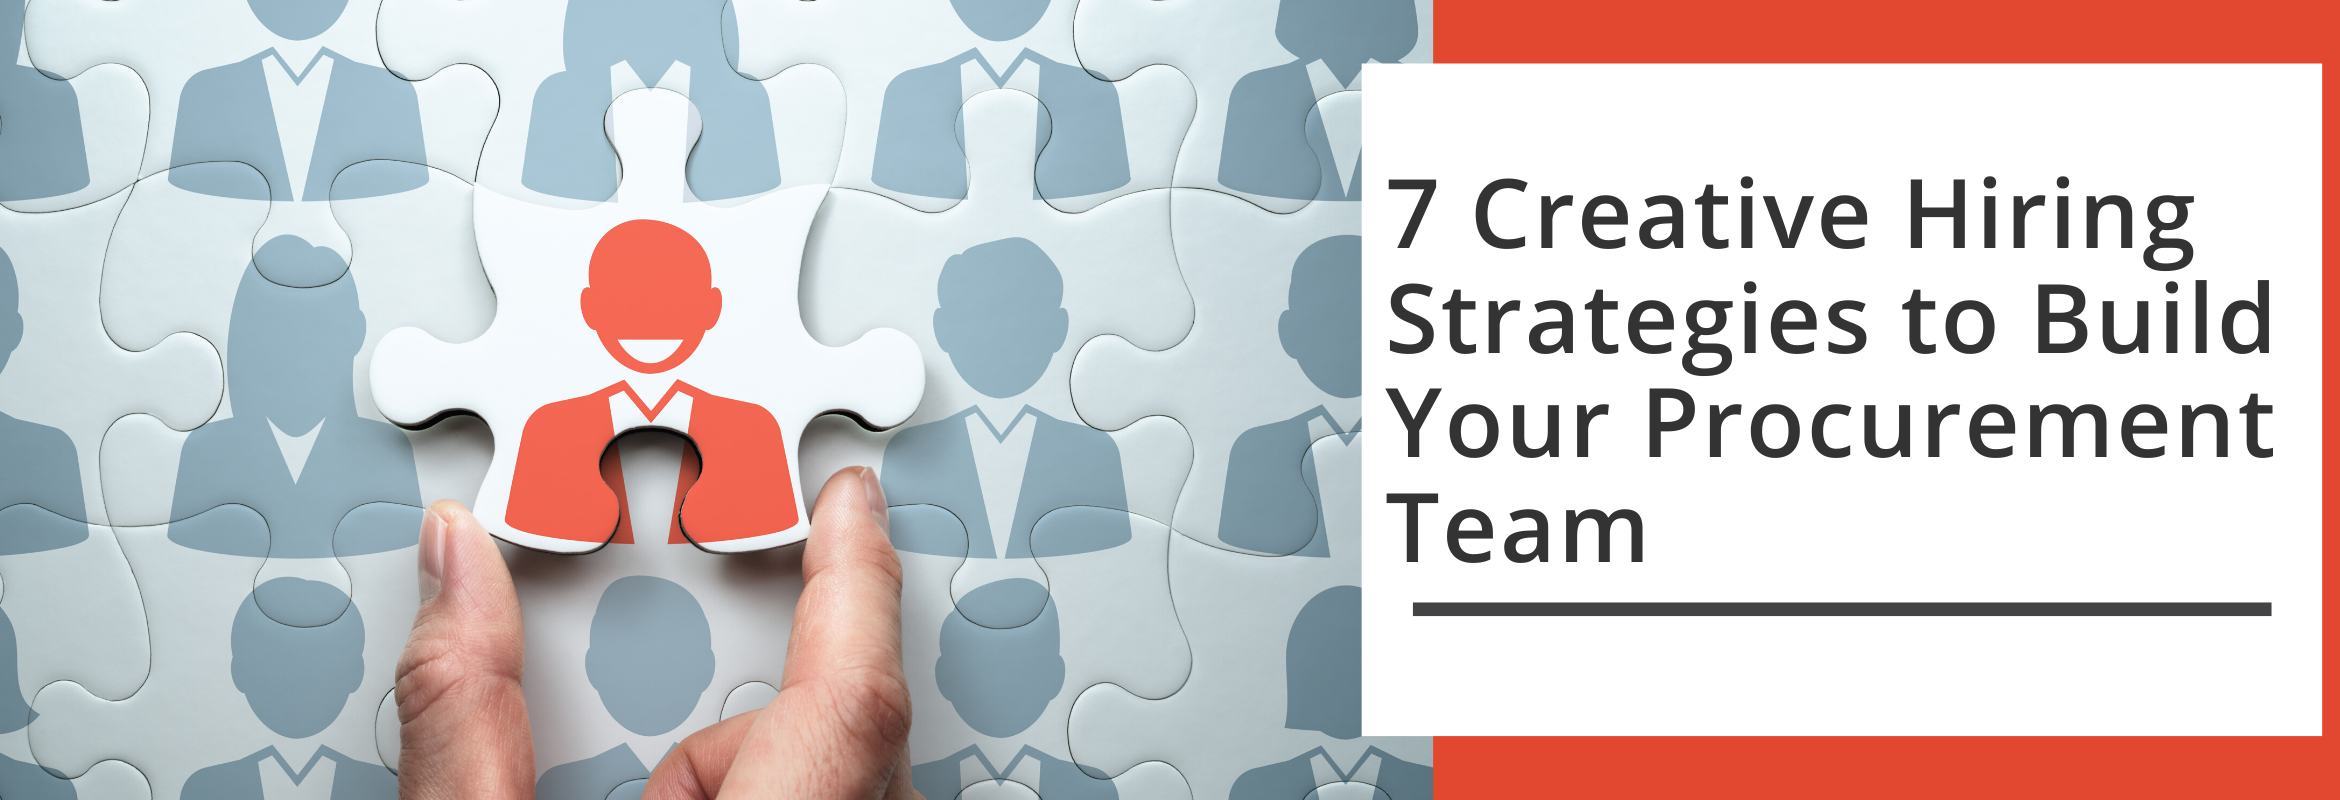 7 Creative Hiring Strategies for Building Your Procurement Team